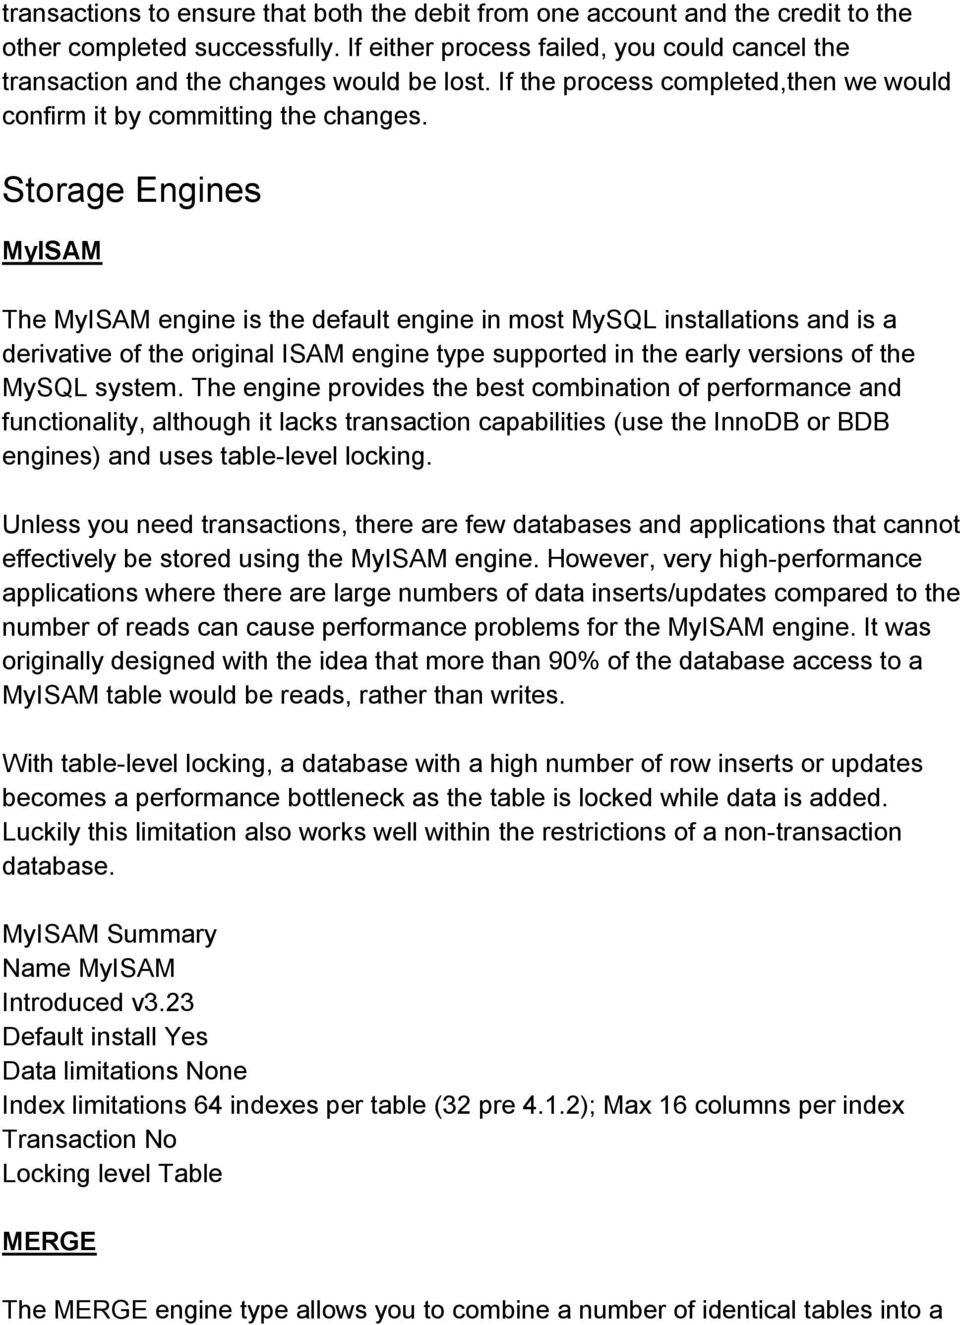 Storage Engines MyISAM The MyISAM engine is the default engine in most MySQL installations and is a derivative of the original ISAM engine type supported in the early versions of the MySQL system.